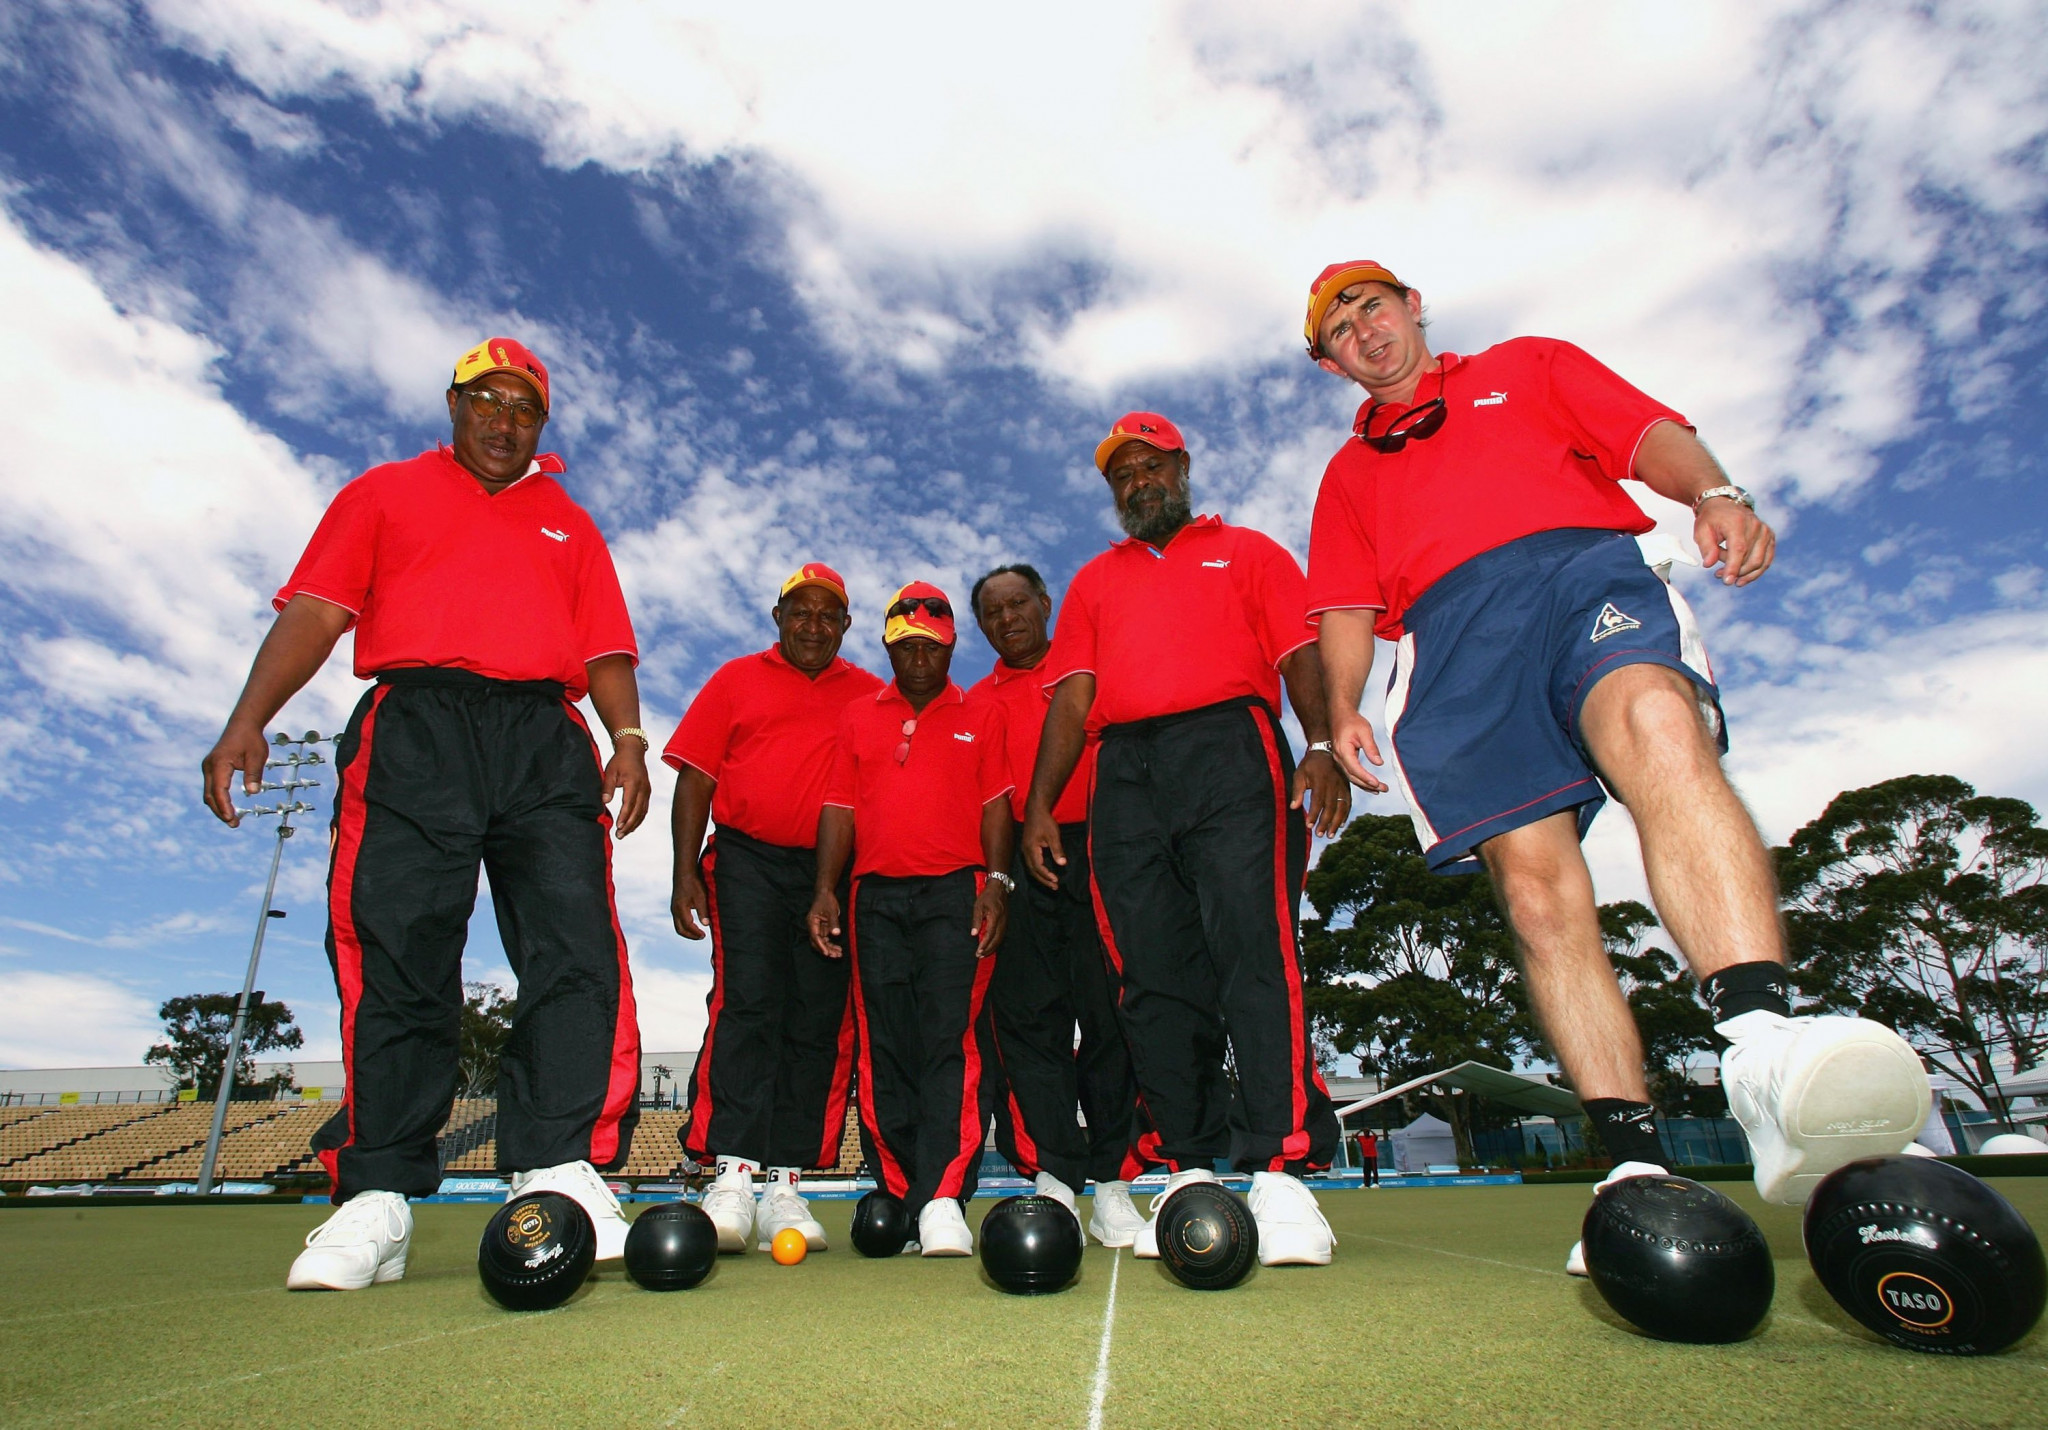 The lawn bowls community in Papua New Guinea has expressed concern over the structure of Bowls PNG ©Getty Images